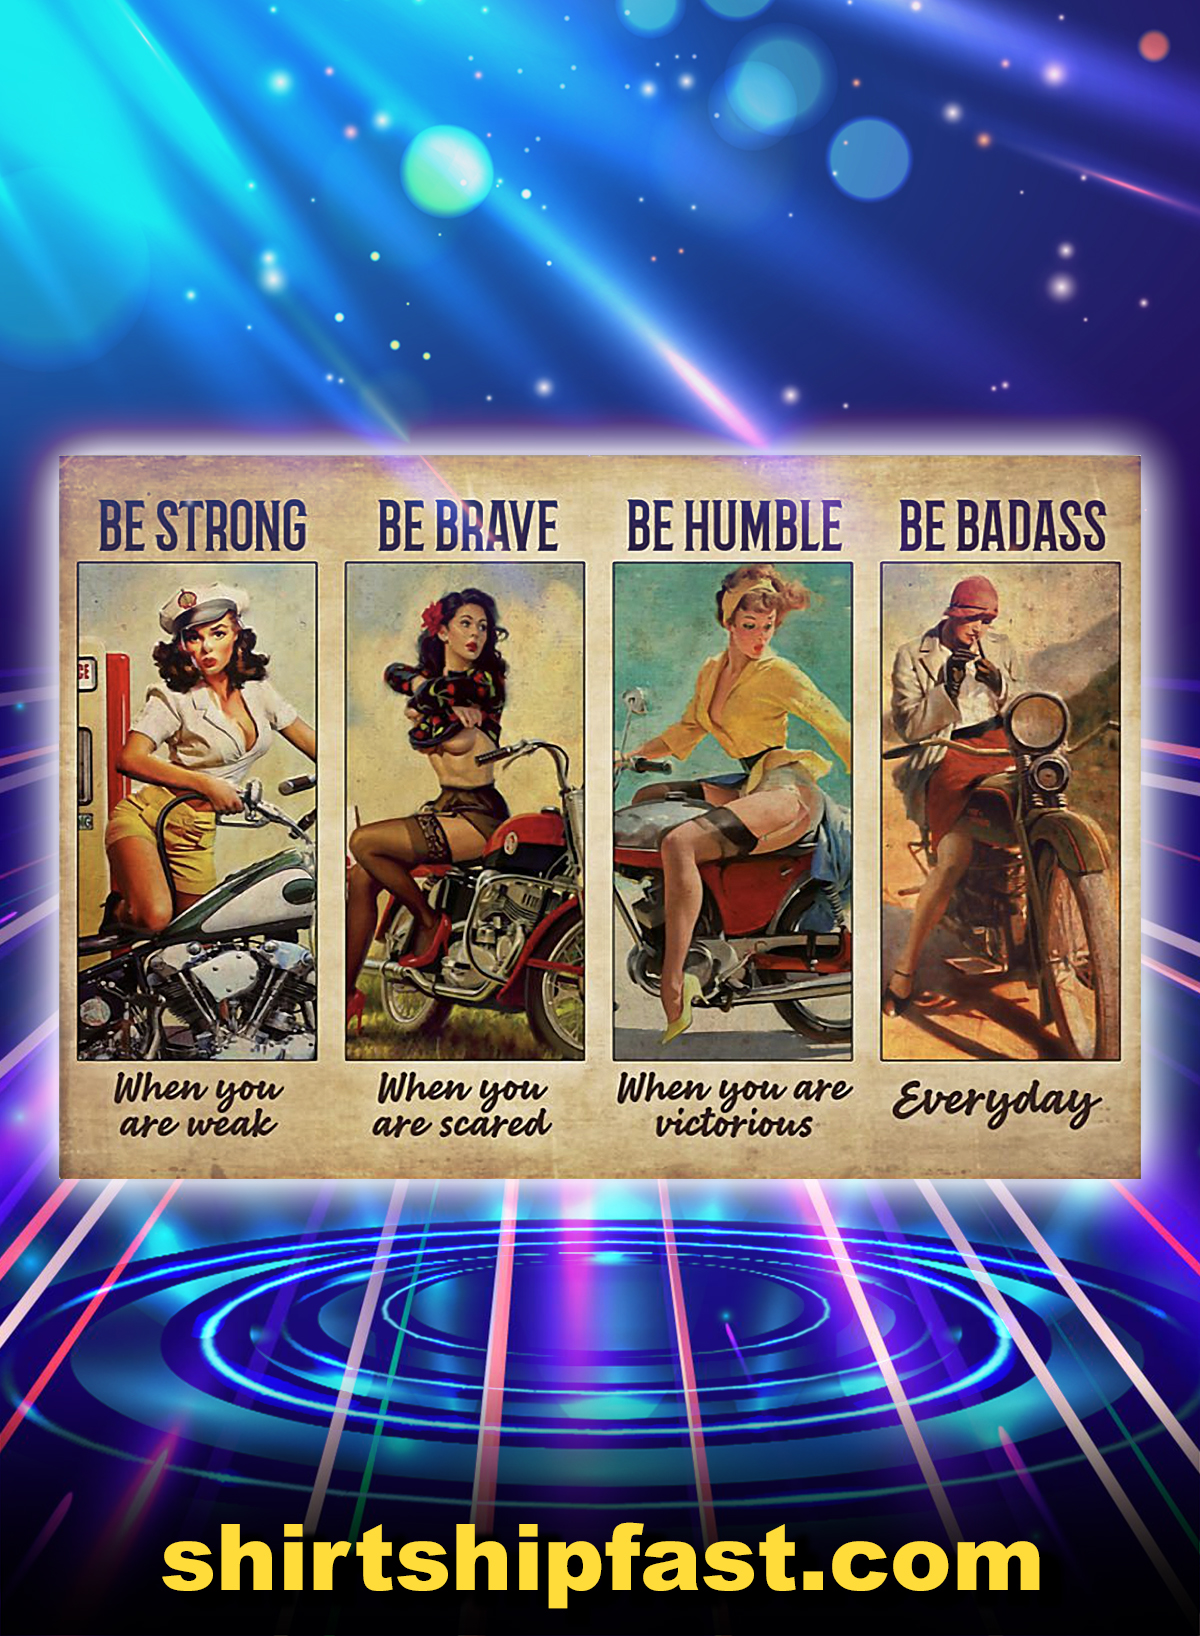 Be strong be brave be humble be badass biker girl poster